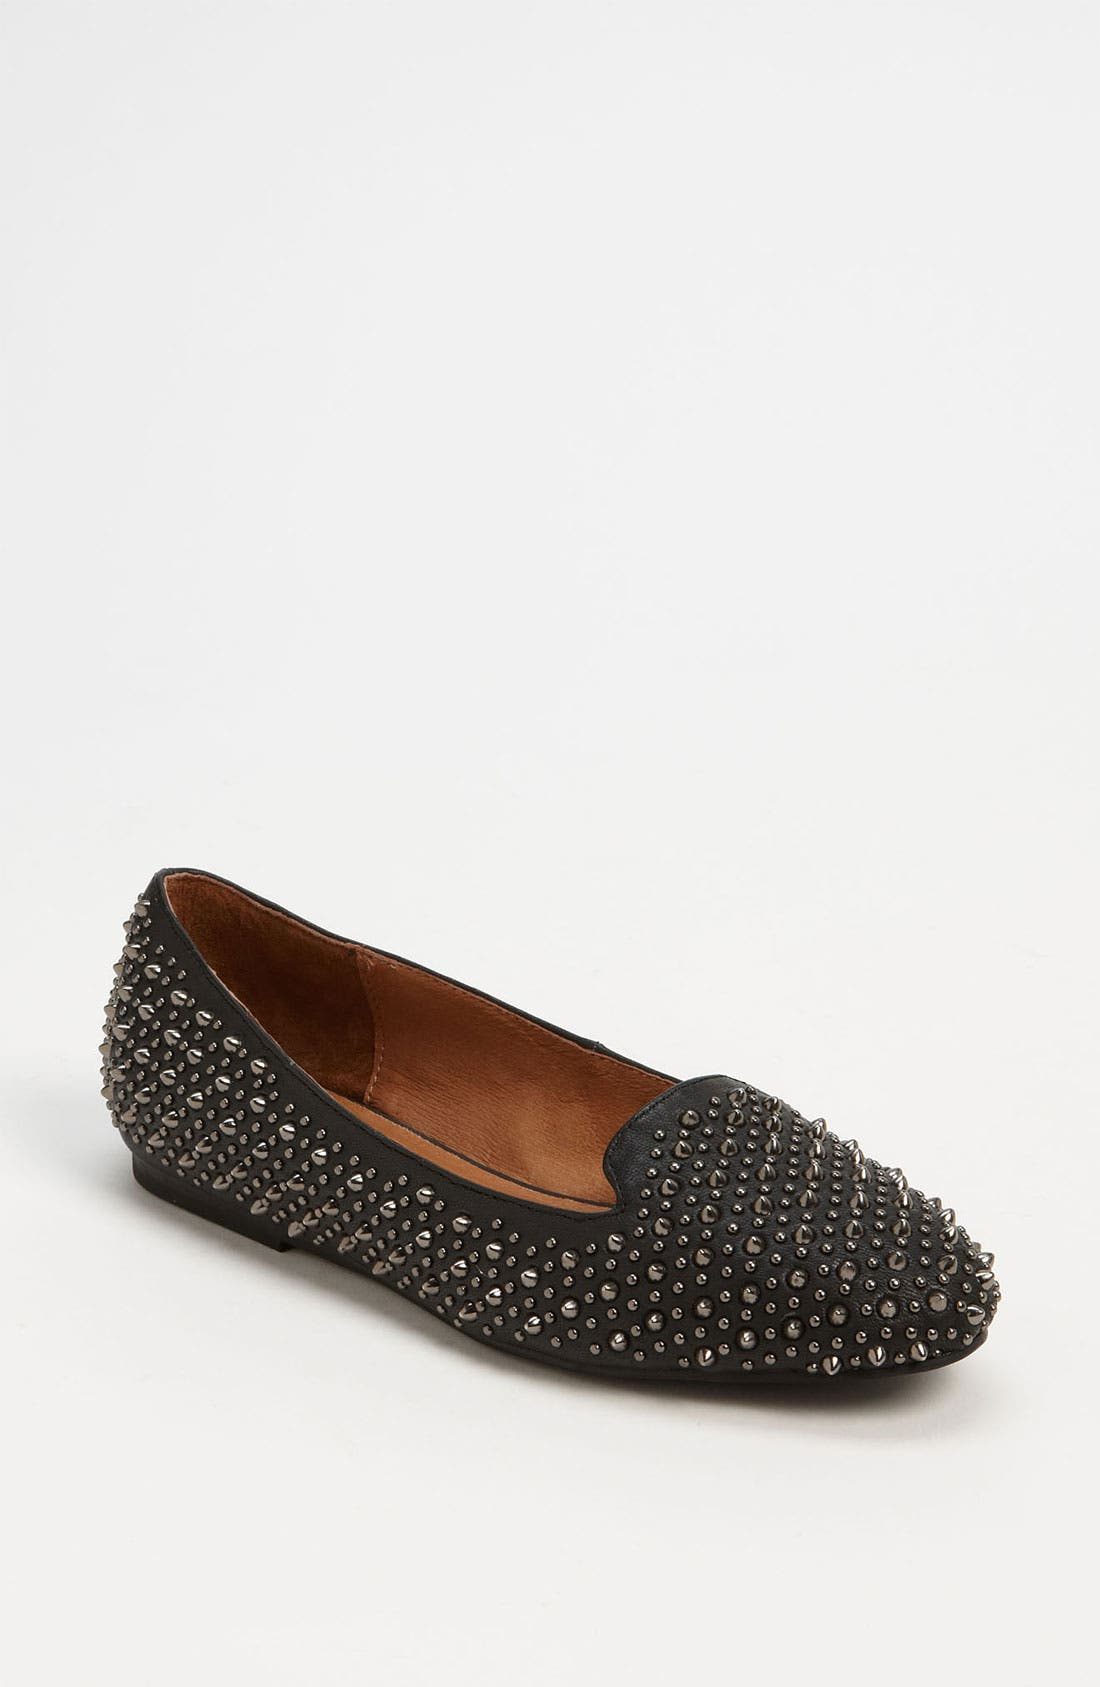 Alternate Image 1 Selected - Jeffrey Campbell 'Martini' Flat